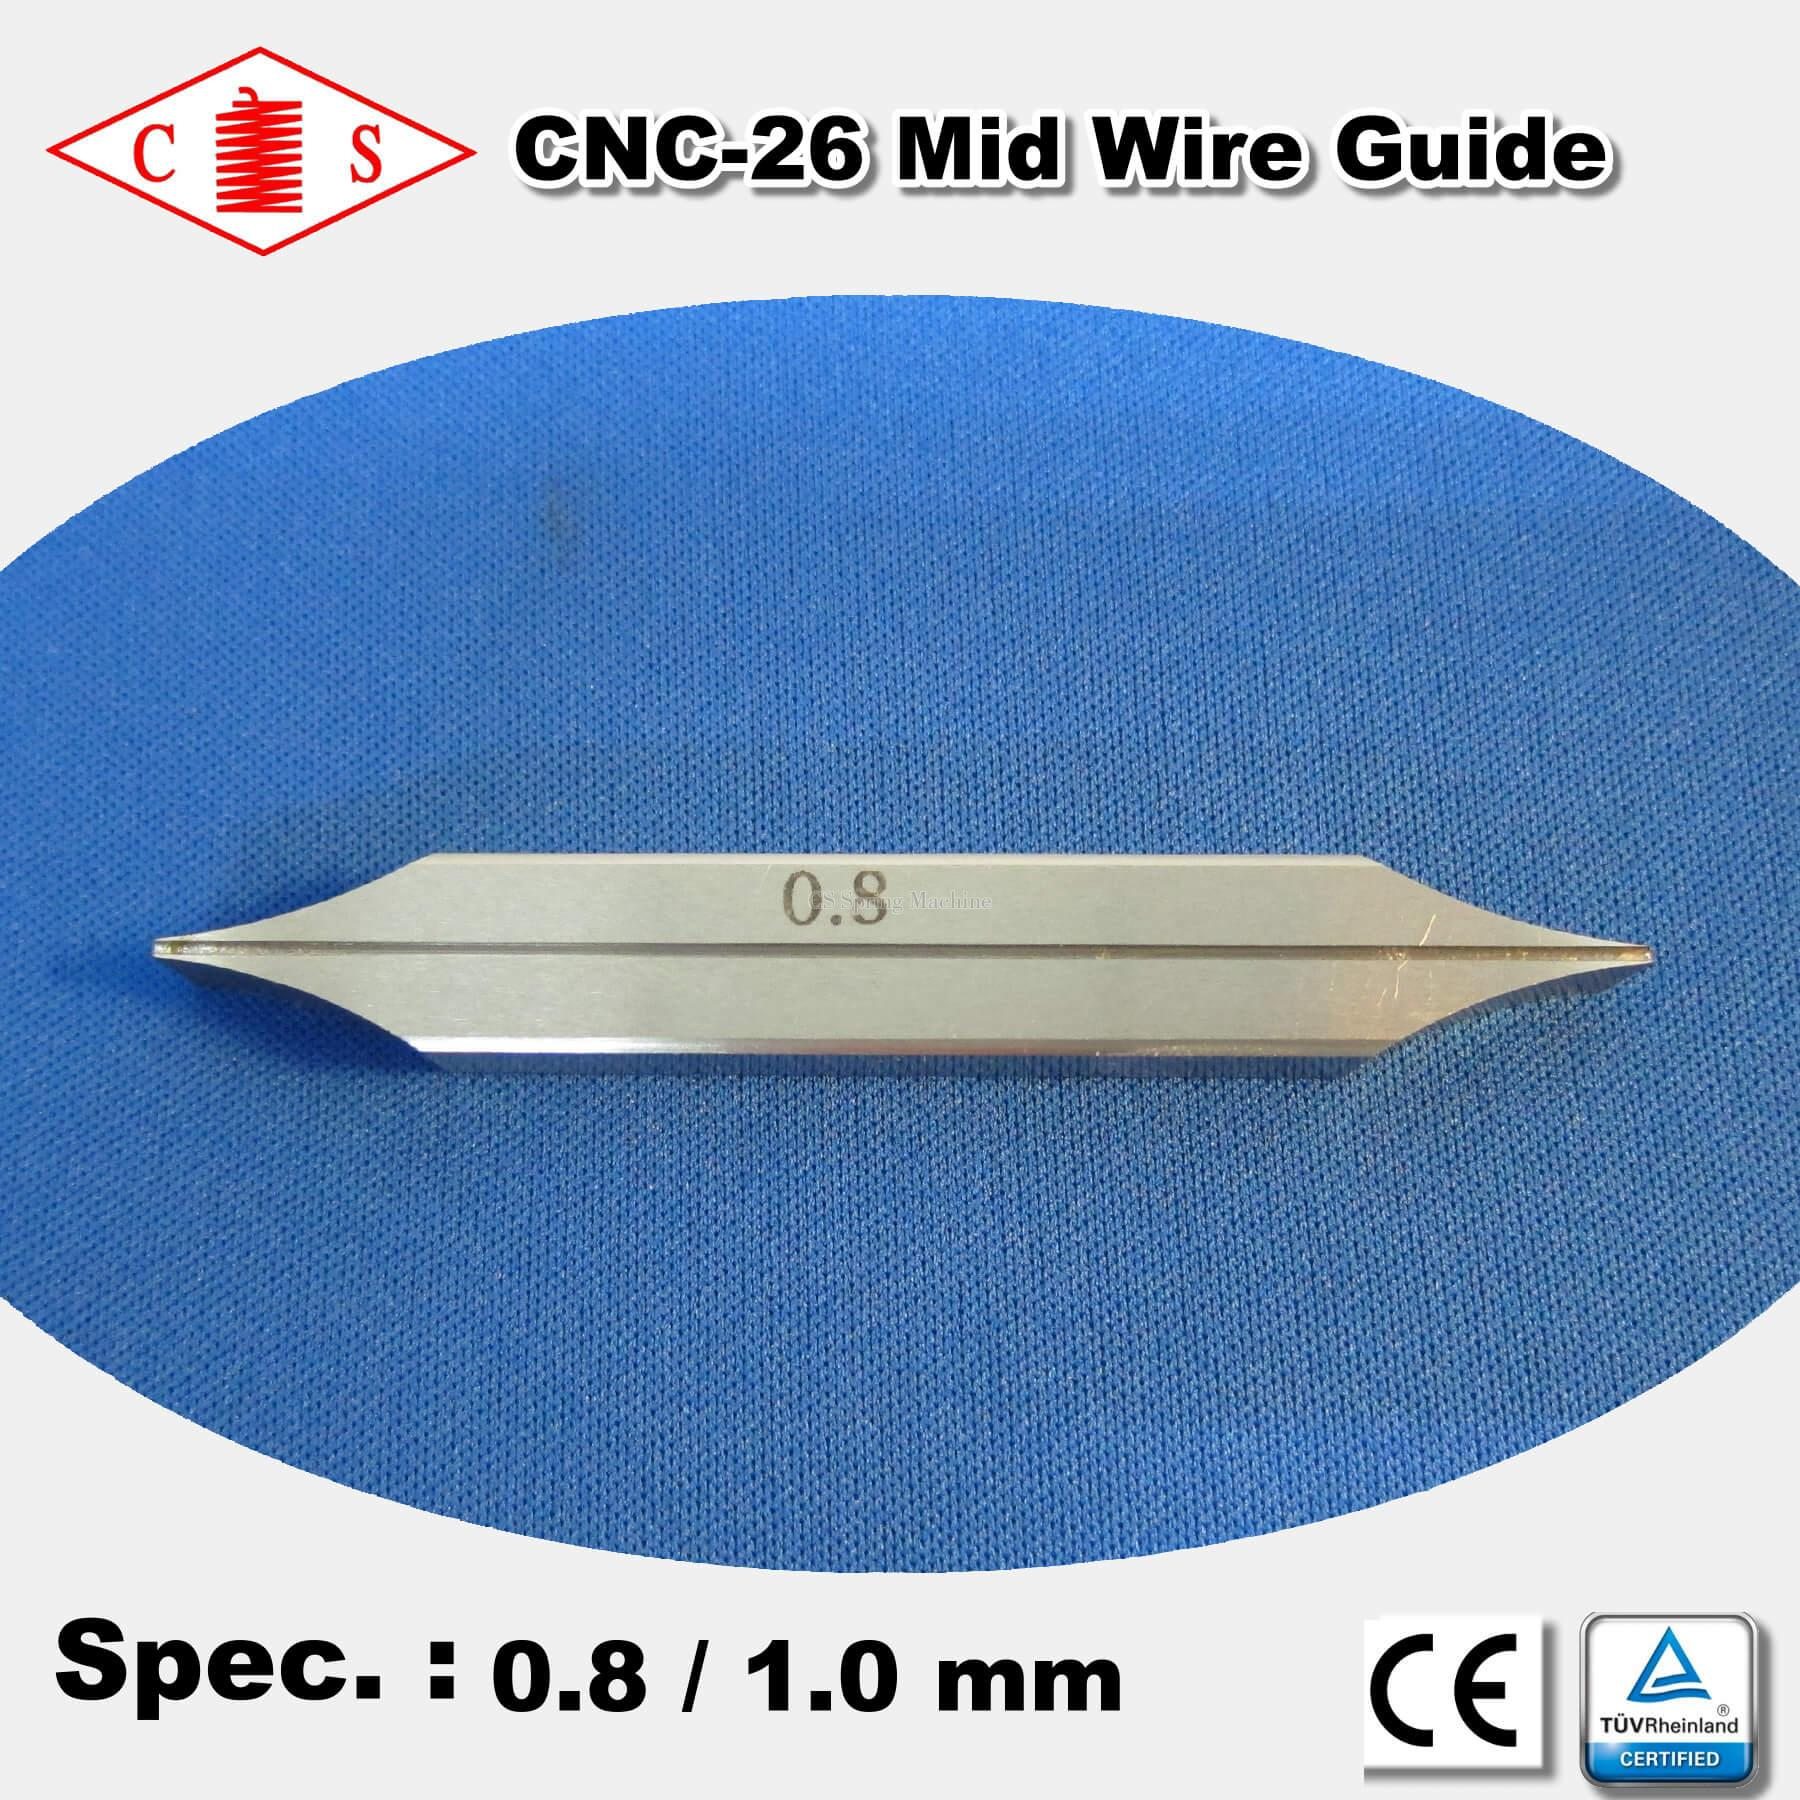 CNC-26 Mid Wire Guide 0.8 / 1.0 mm CNC-26 Spring Machine Spare Parts ...